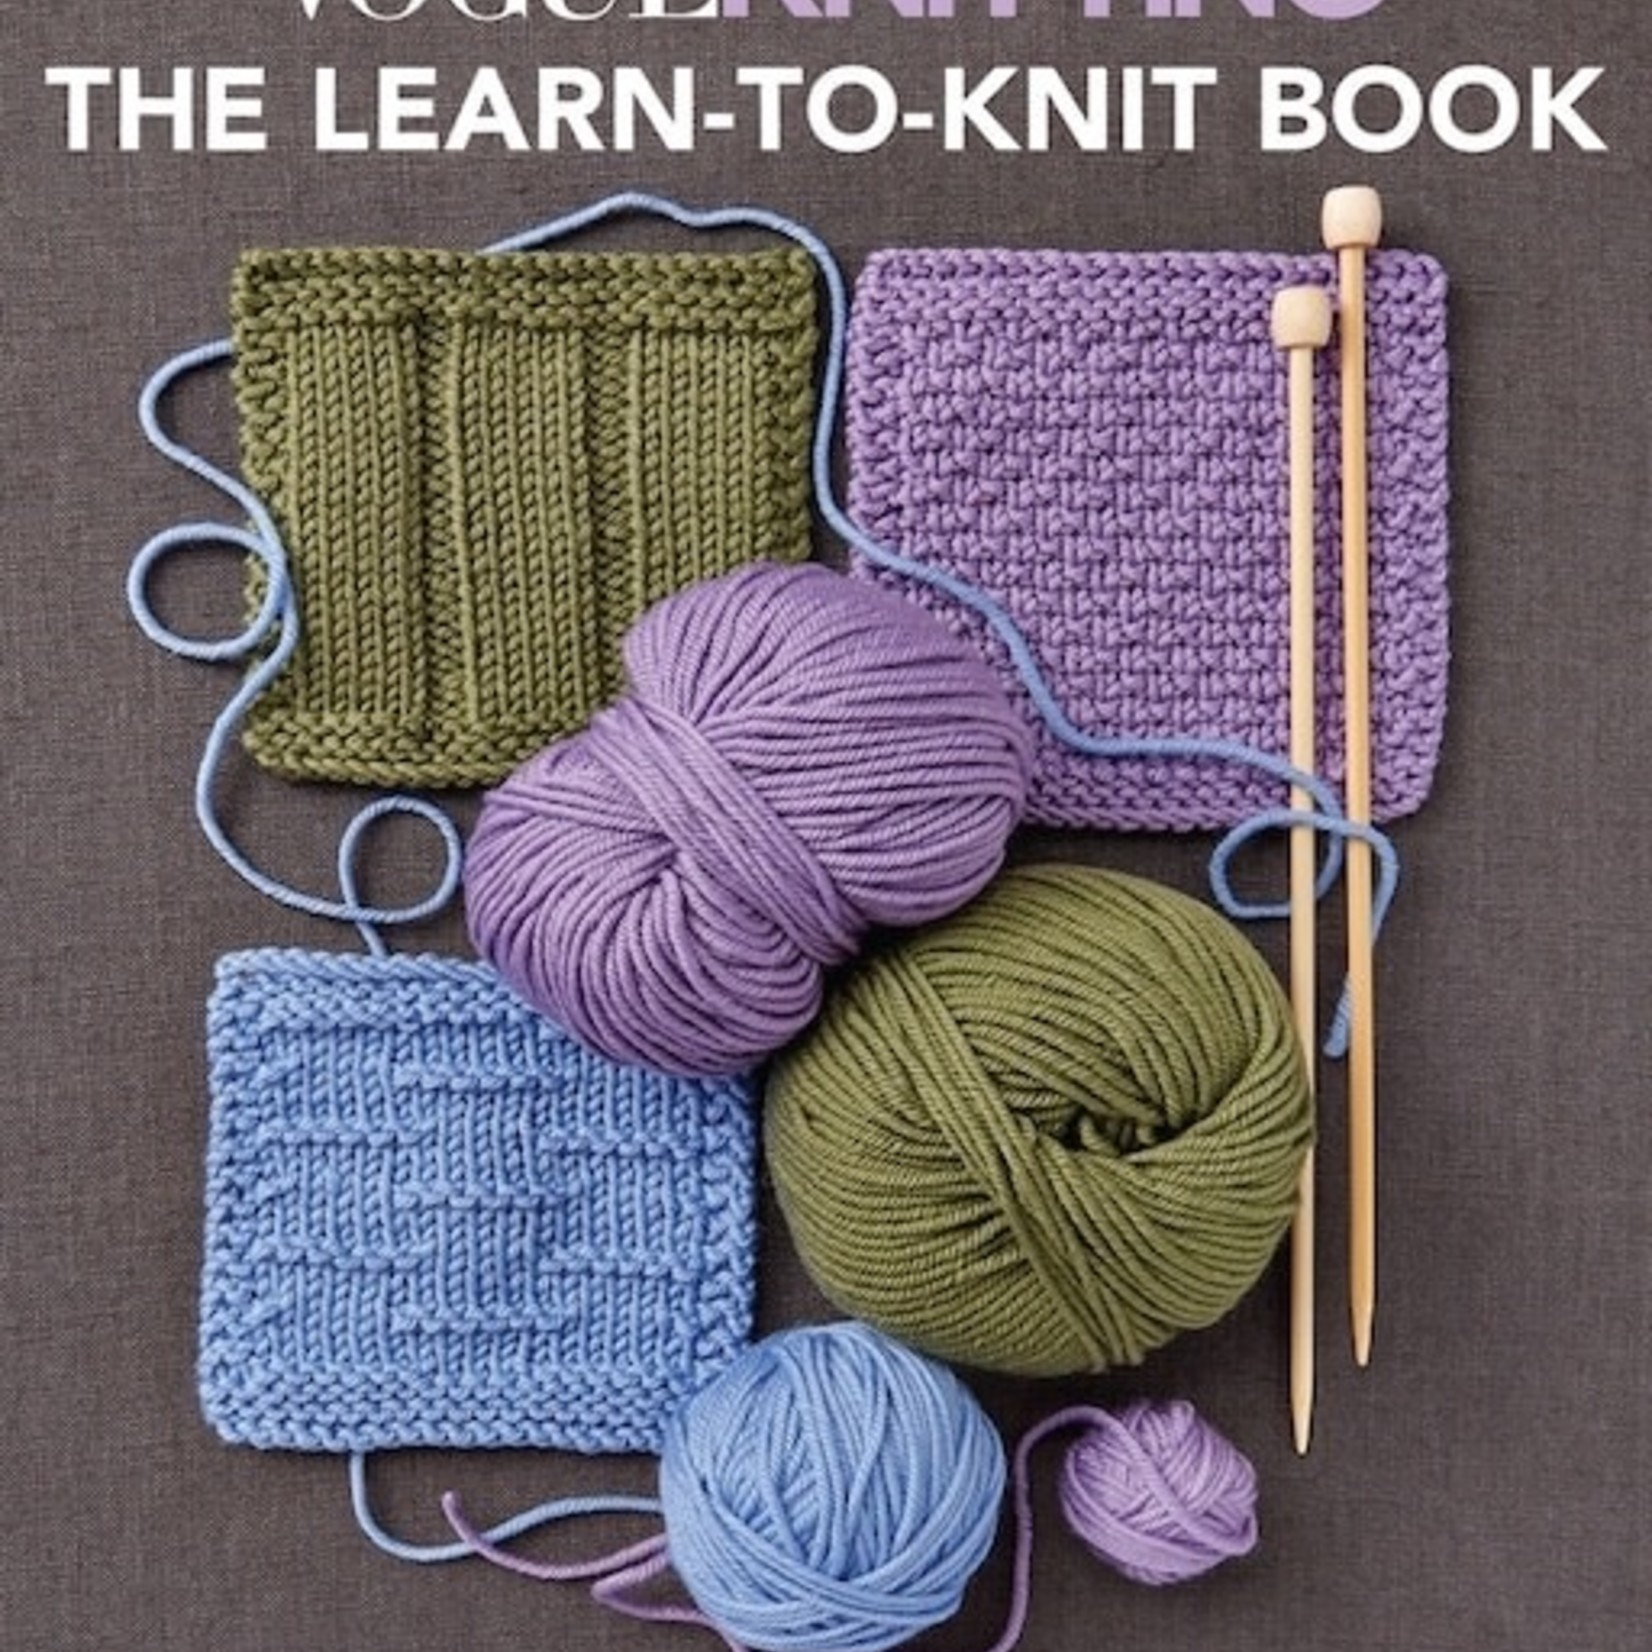 Vogue Knitting The Learn to Knit Book by Vogue Knitting